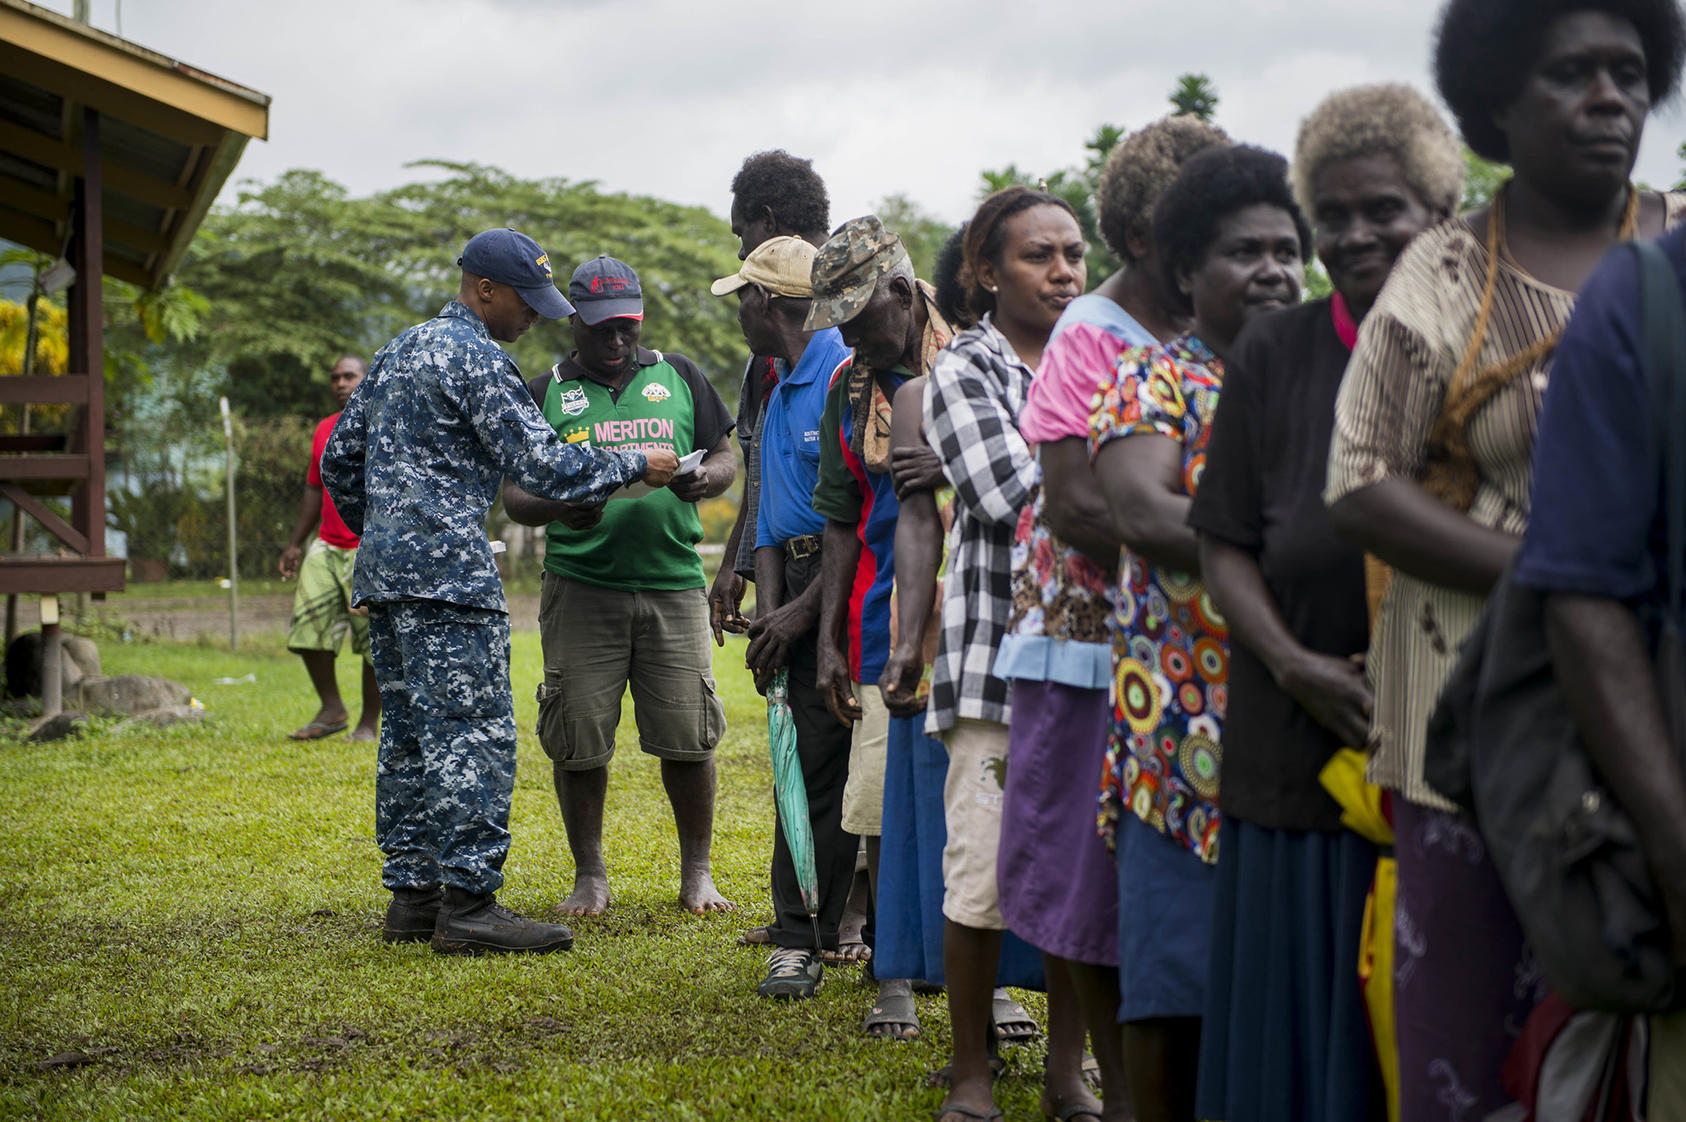 Residents of the autonomous region of Bougainville in Papua New Guinea wait in line as part of a community health engagement at the Arawa Medical Clinic, July 3, 2015. (SrA Peter Reft/Wikimedia)